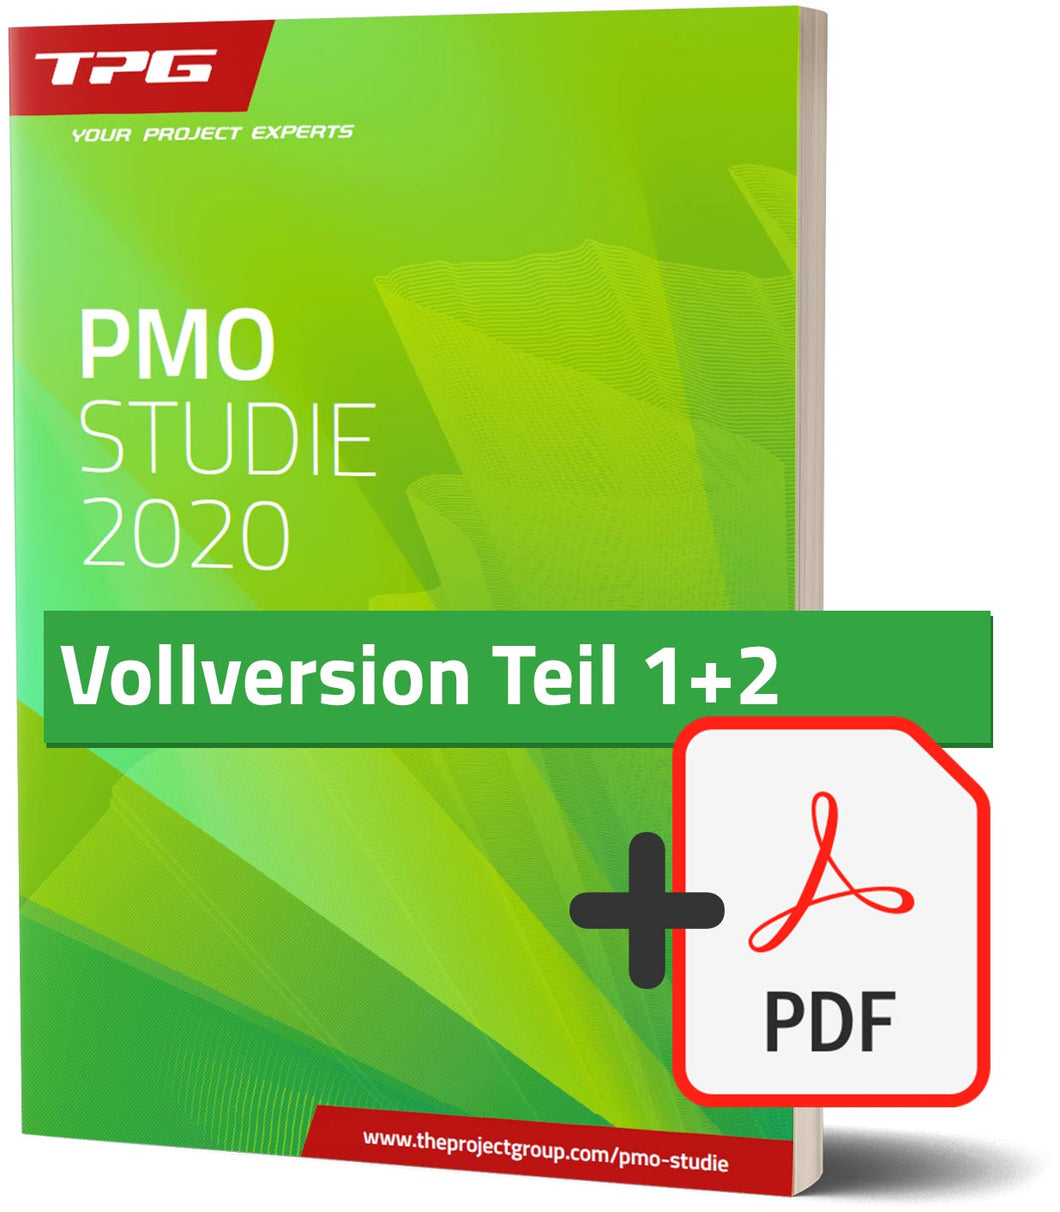 PMO-Studie Vollversion, Teil 1+2 (Buch + PDF)